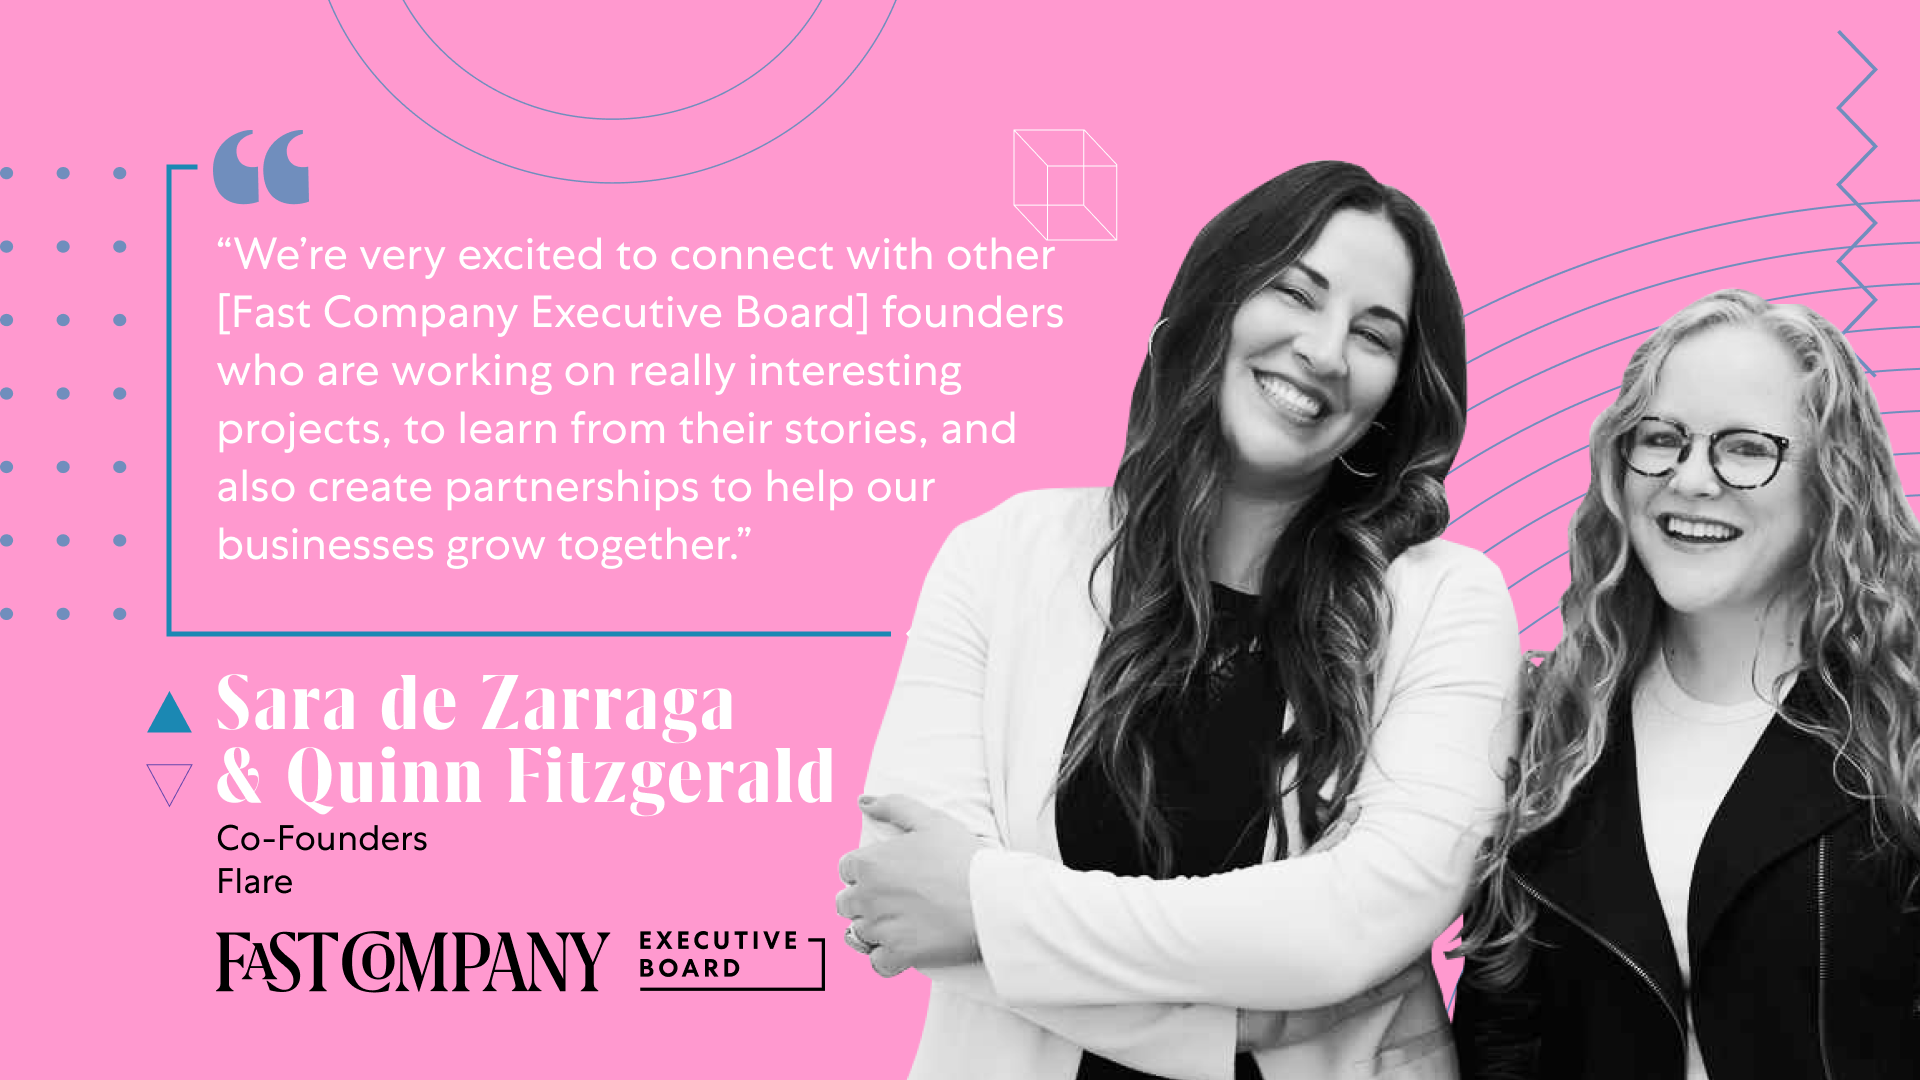 Connecting With Founders Entices Quinn Fitzgerald and Sara de Zarraga